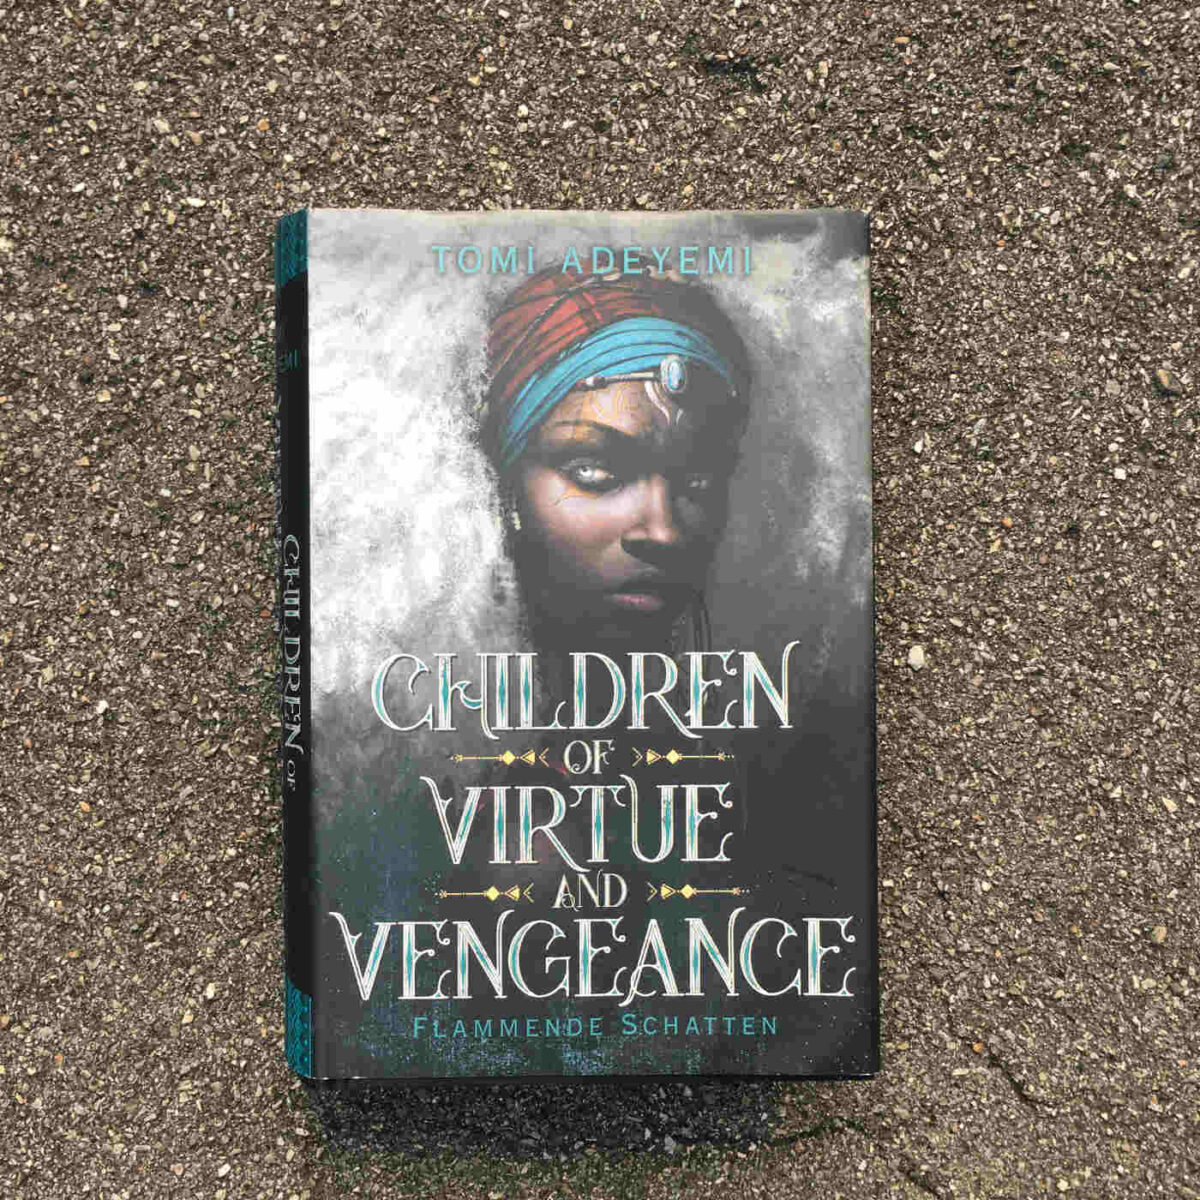 Tomi Adeyemi: Children of Virtue and Vengeance, Flammende Schatten